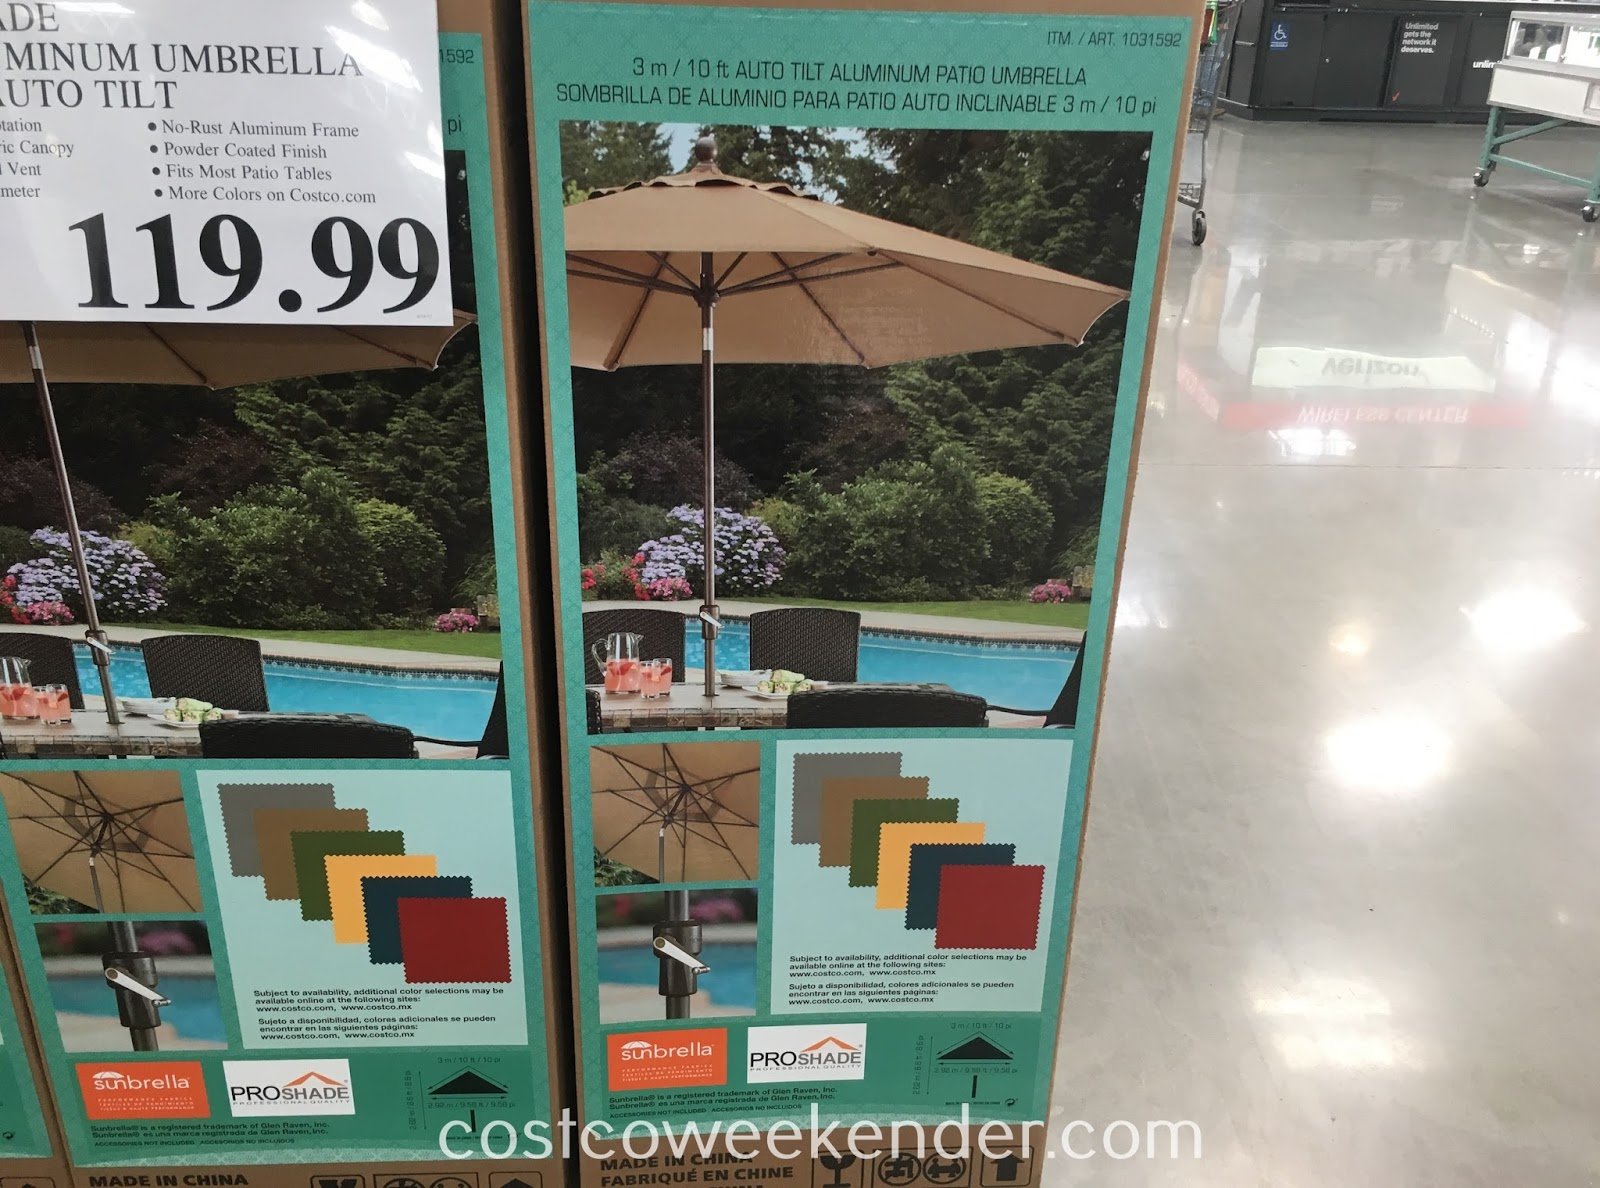 Costco 1031592 - ProShade 10ft Auto Tilt Aluminum Patio Umbrella - Get ready for the sun with some shade